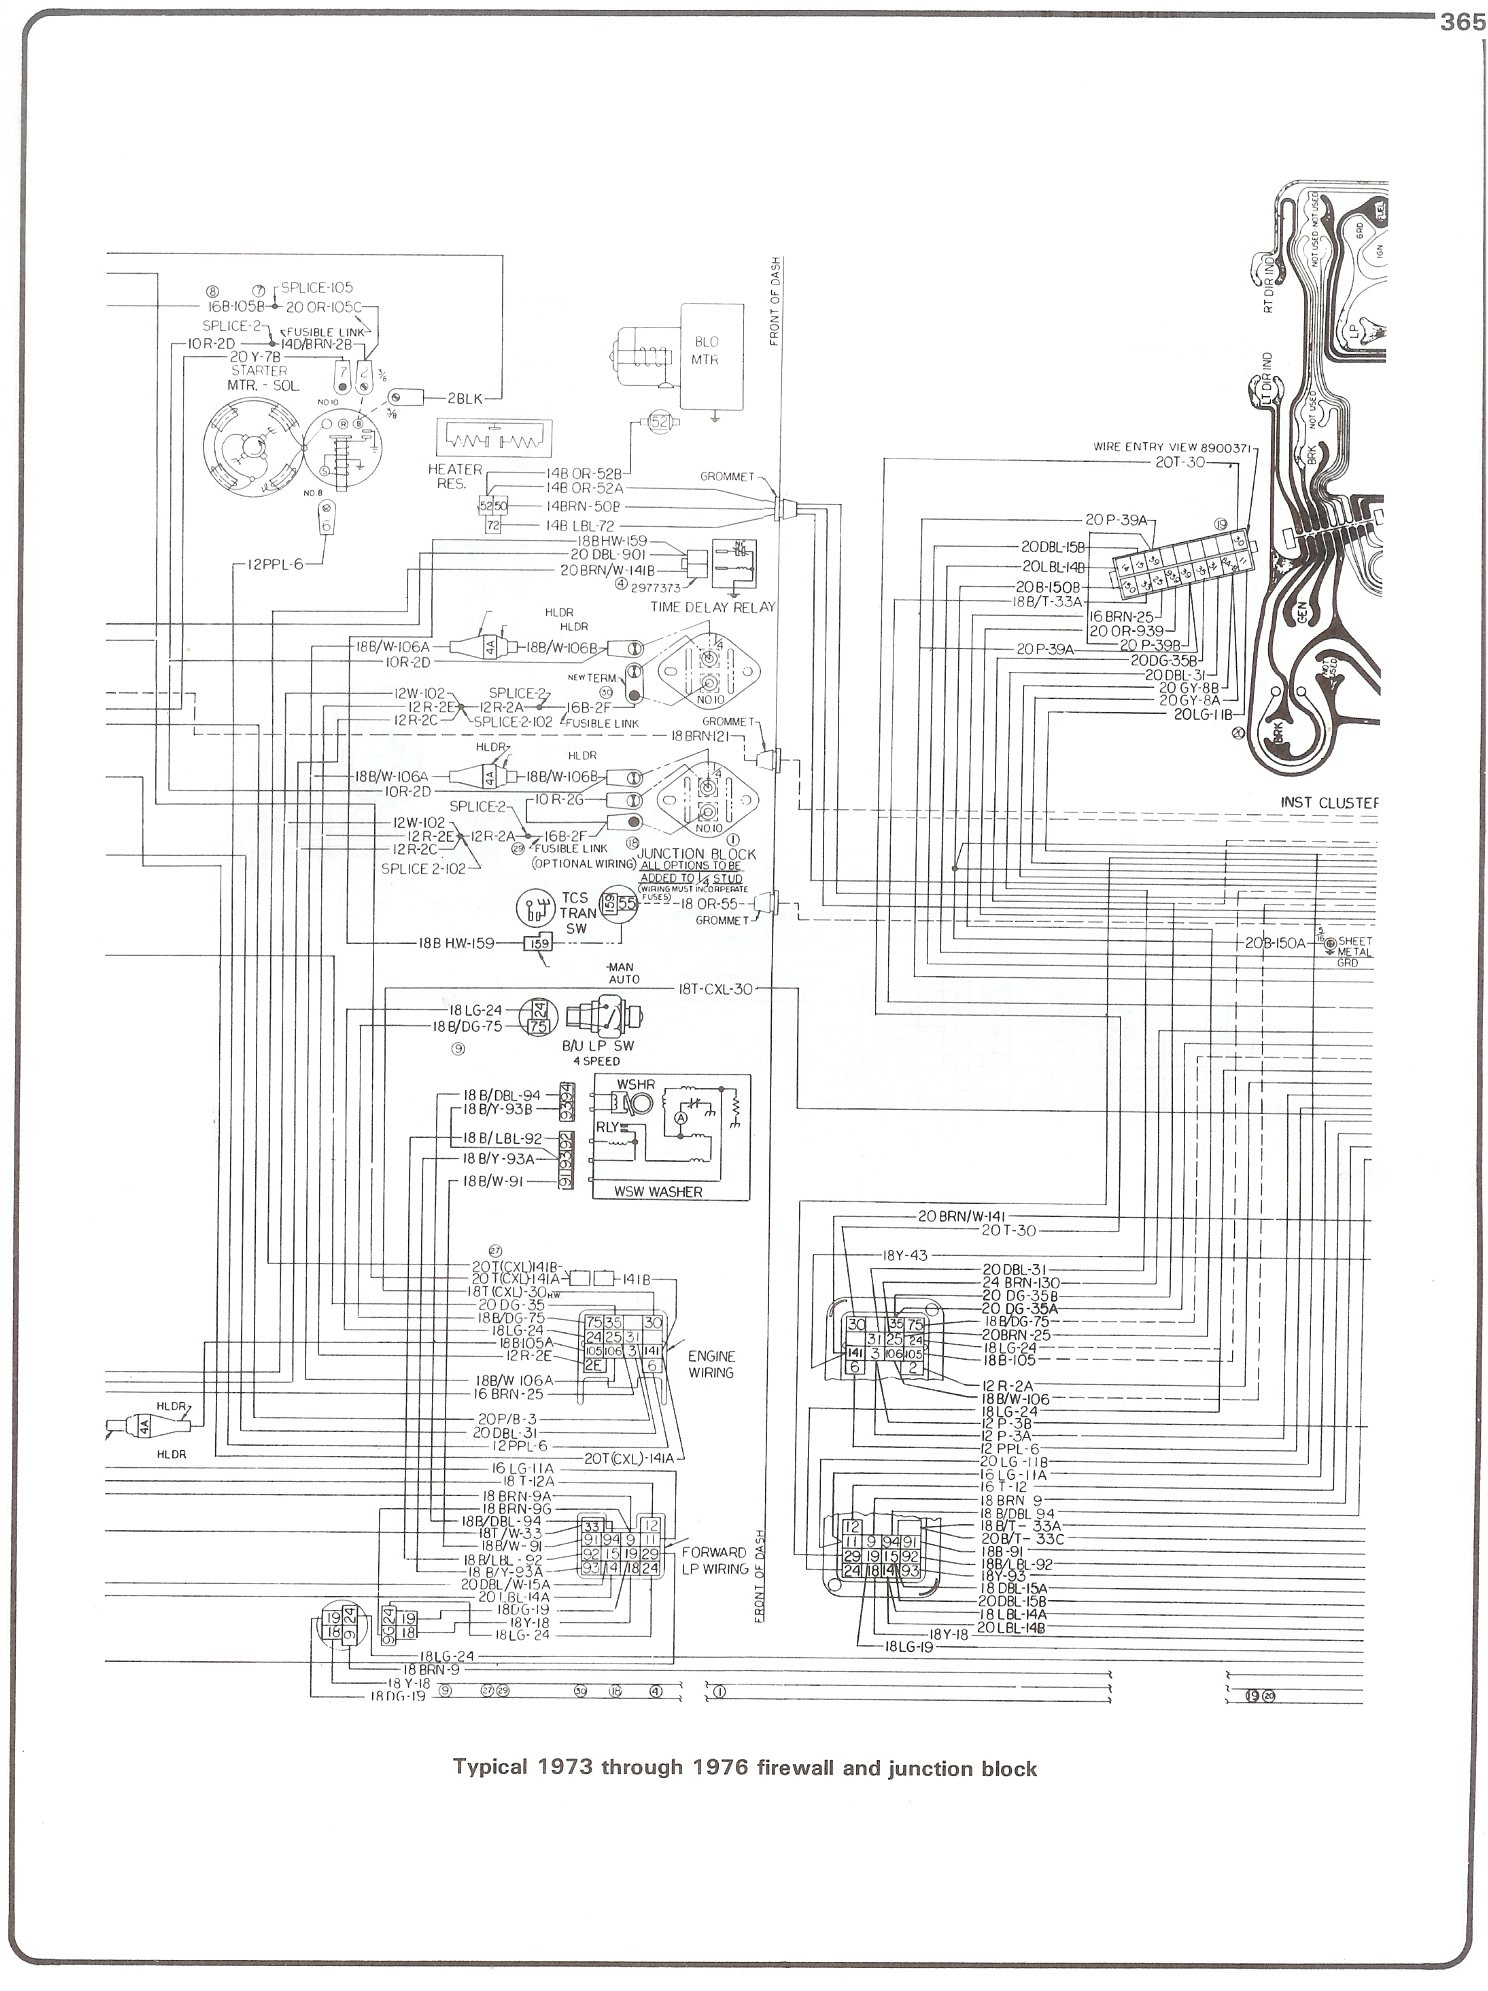 1980 trans am engine wiring diagram complete 73-87 wiring diagrams